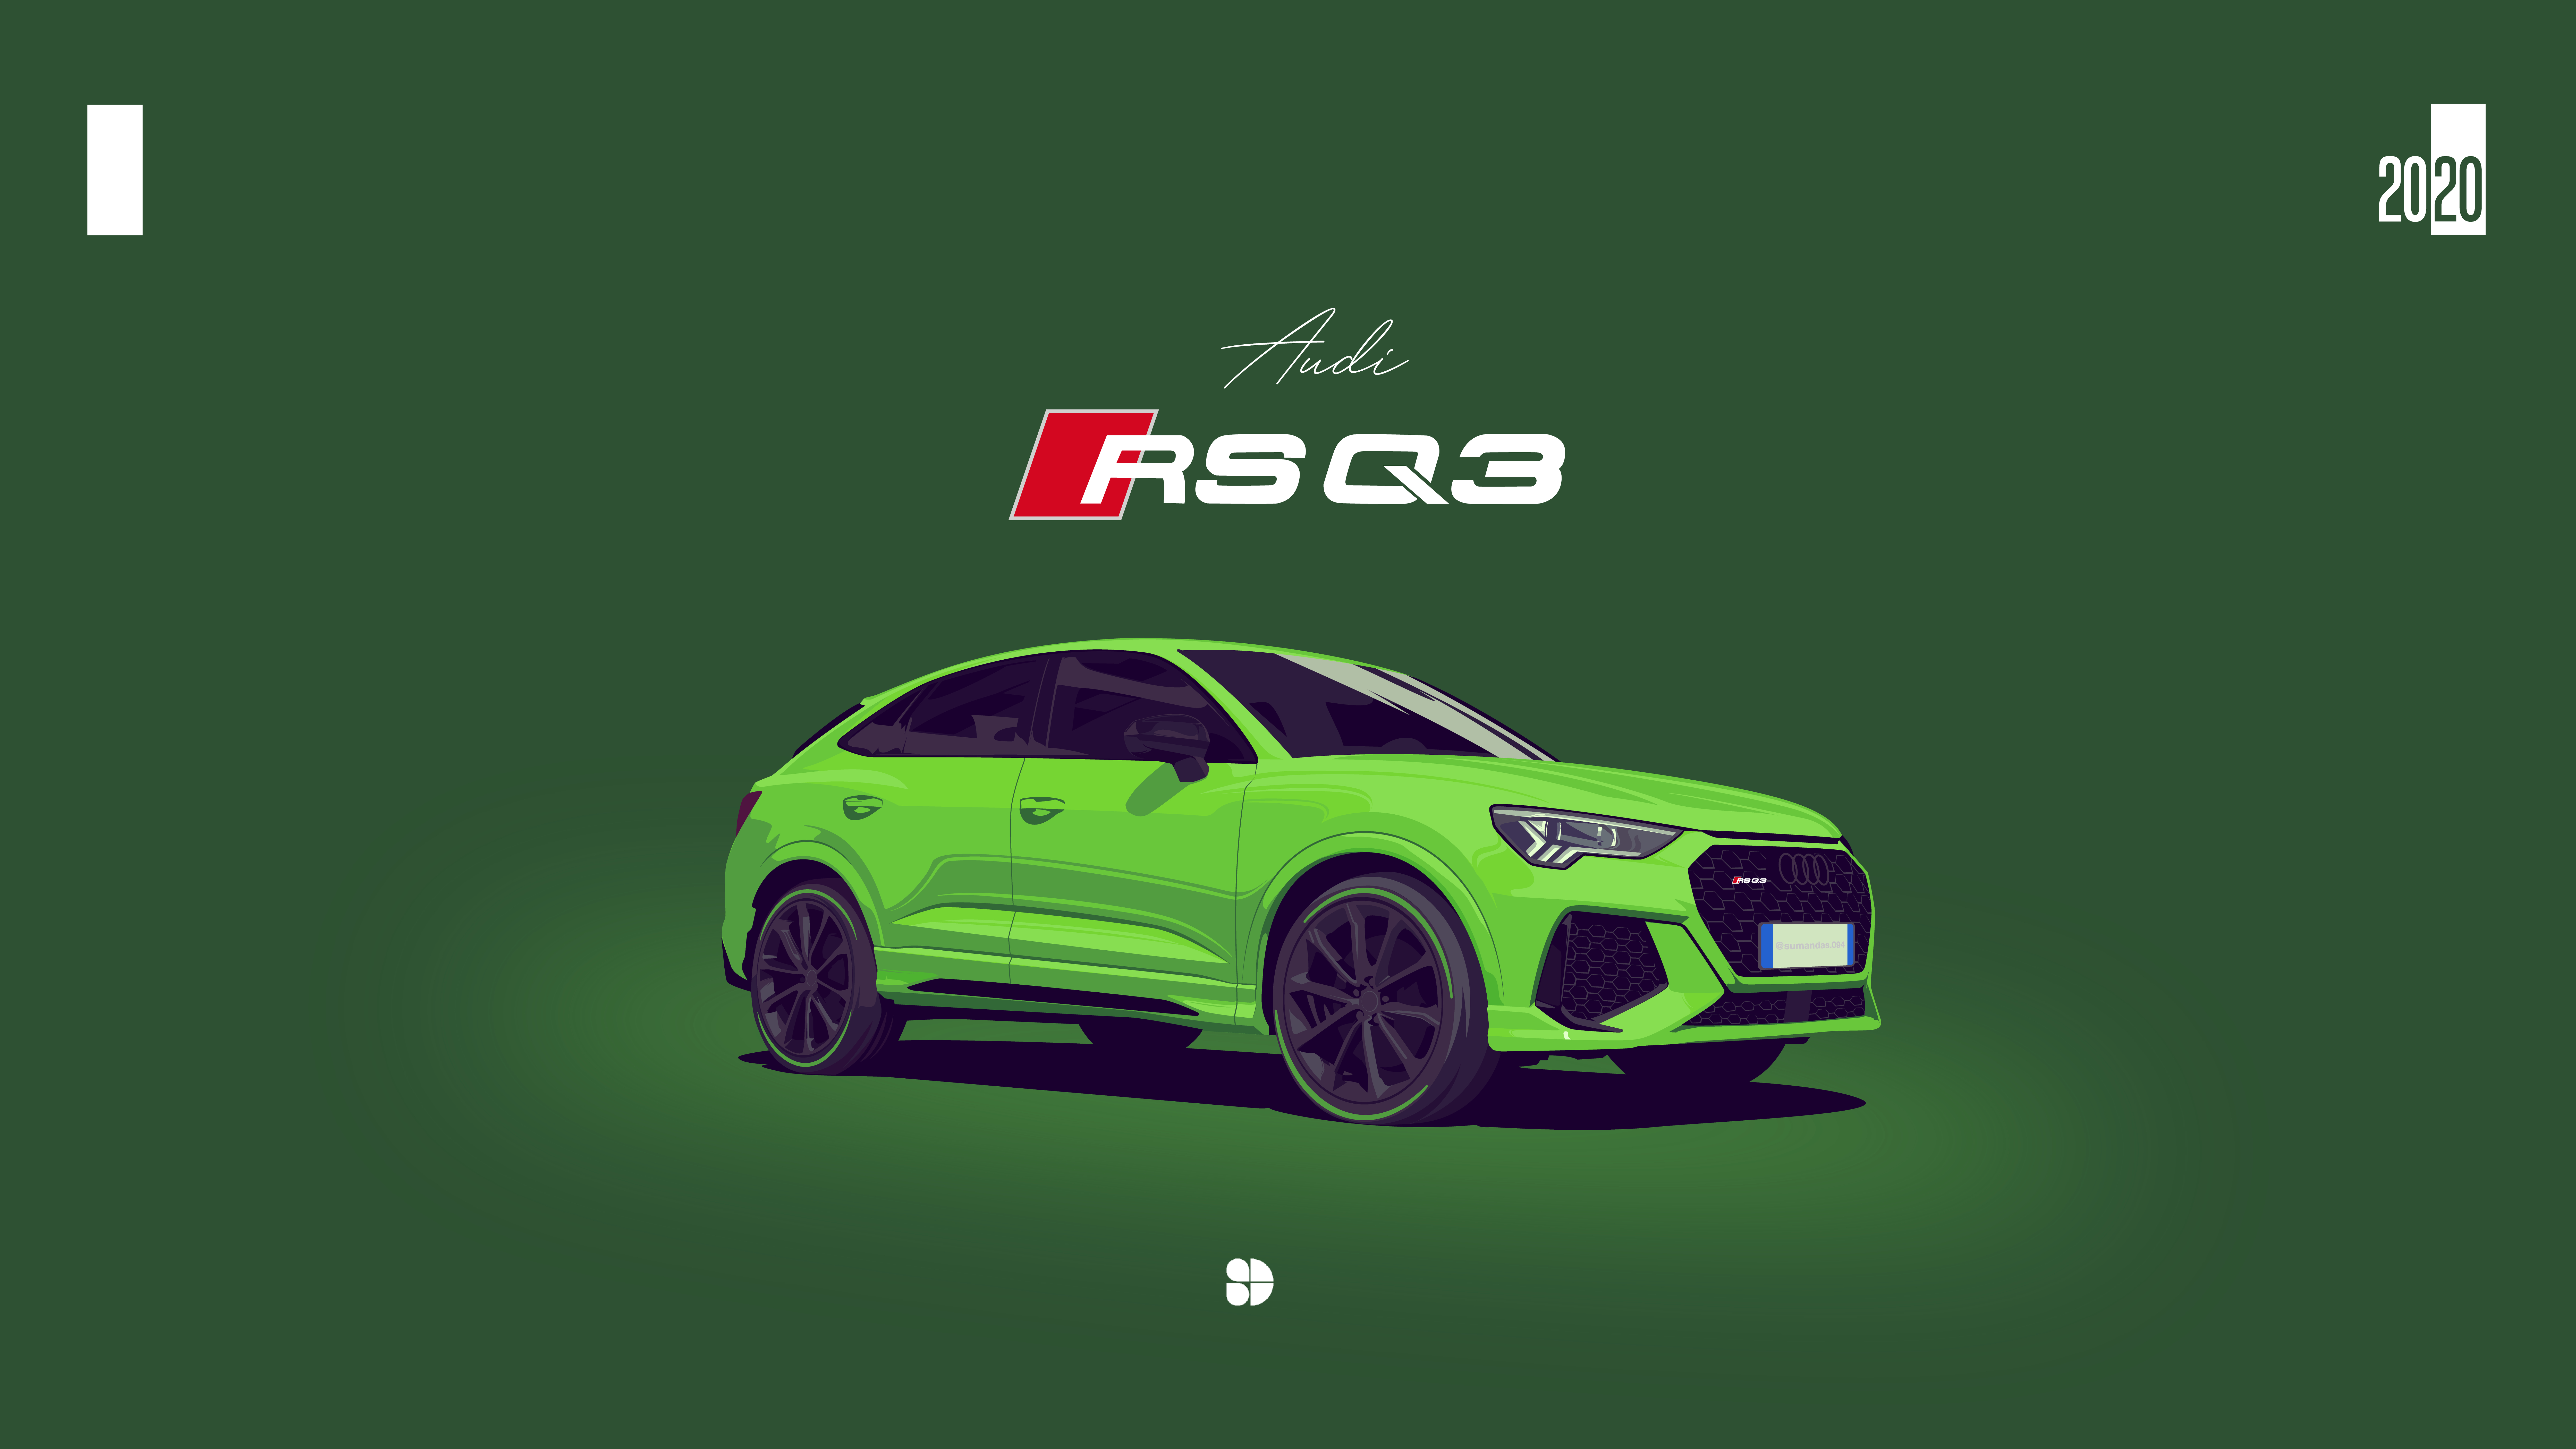 640x1136 Audi Rs Q3 Sportback Iphone 5 5c 5s Se Ipod Touch Wallpaper Hd Cars 4k Wallpapers Images Photos And Background